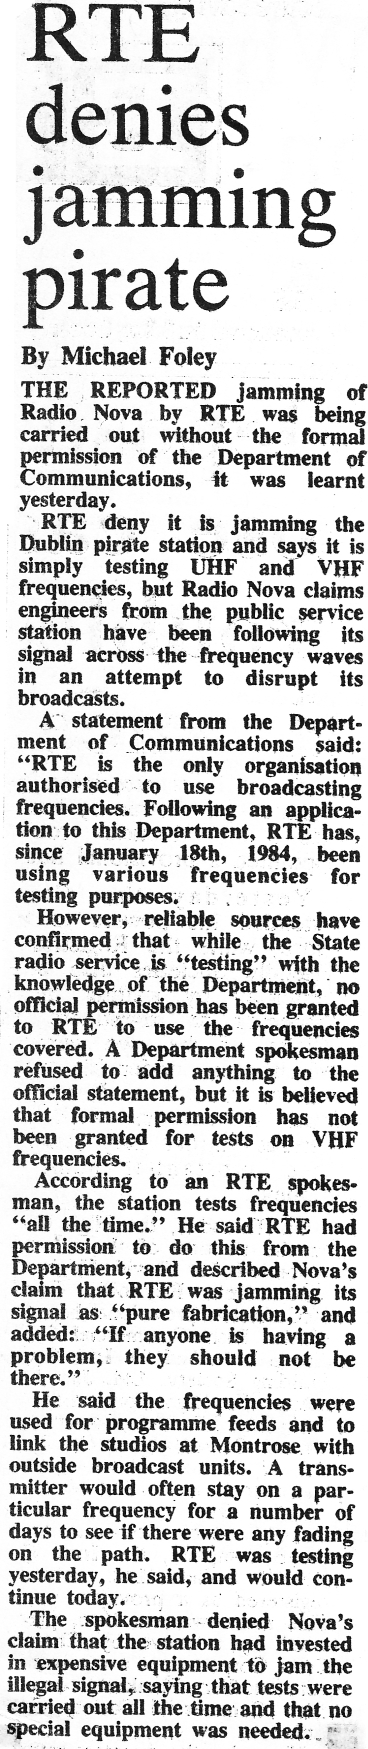 RTÉ denies jamming pirate was a newspaper headline from The Irish Times dated February 4th 1984